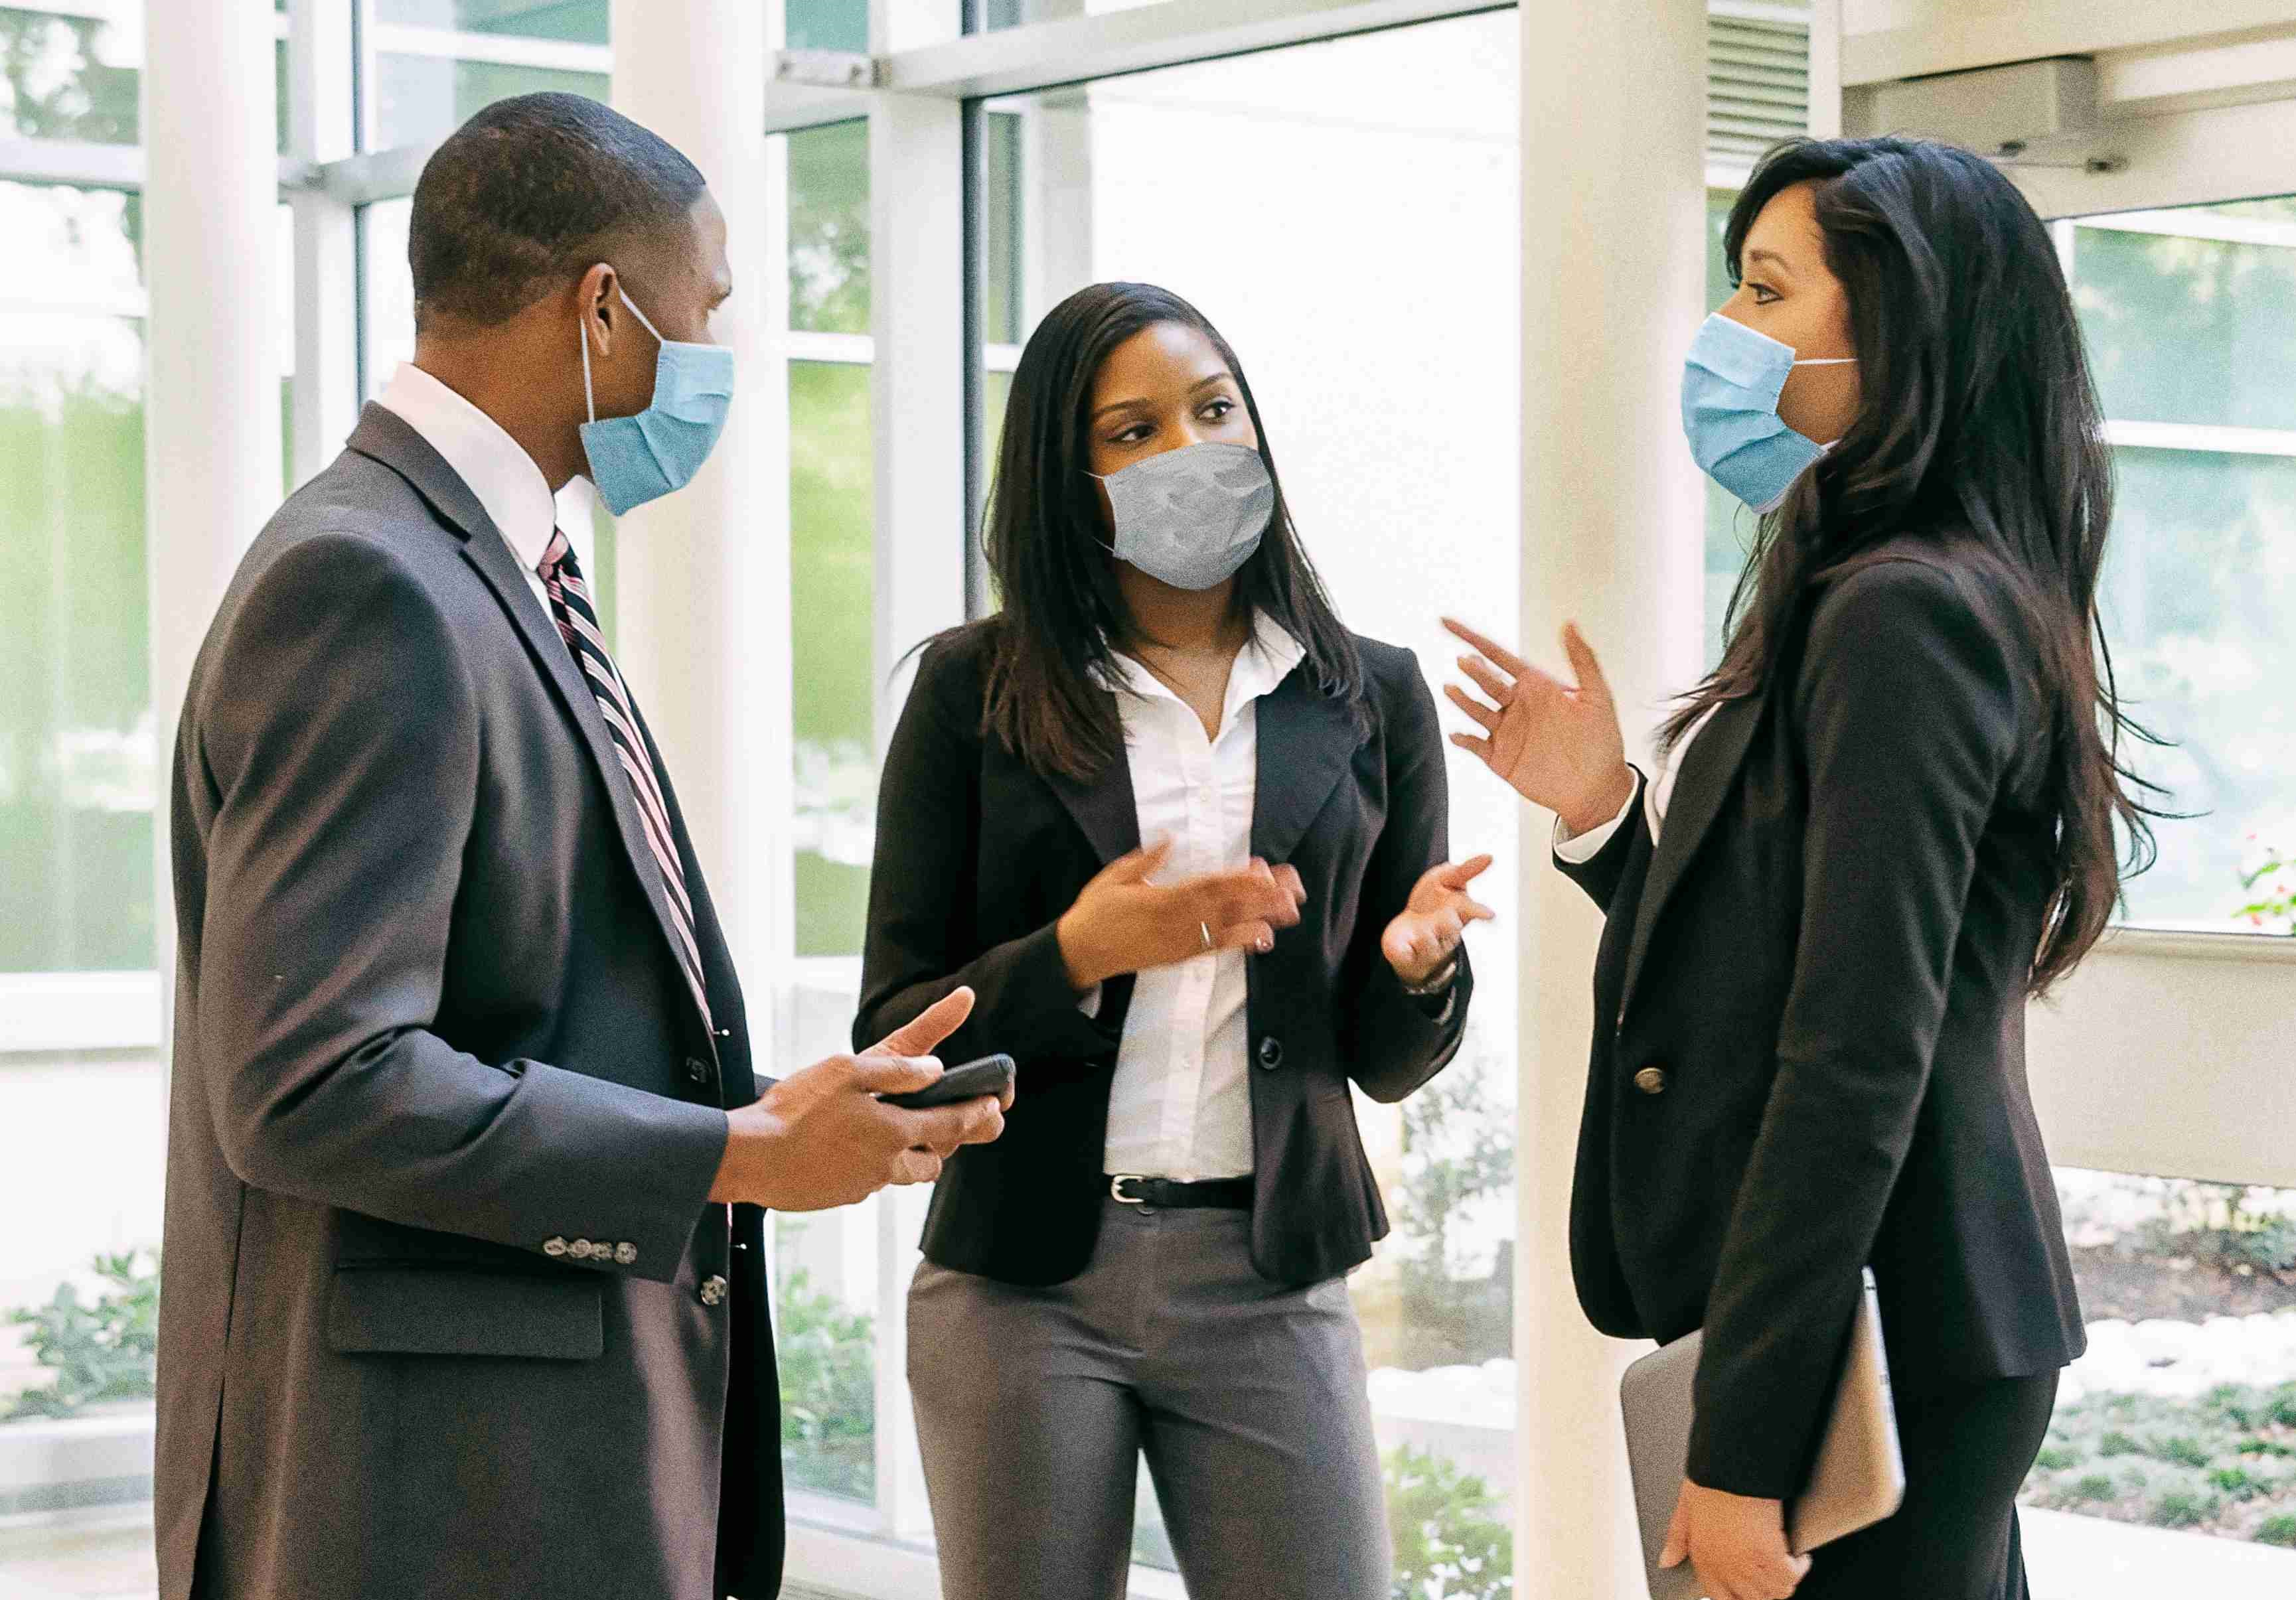 Image of people with Protective Face Mask